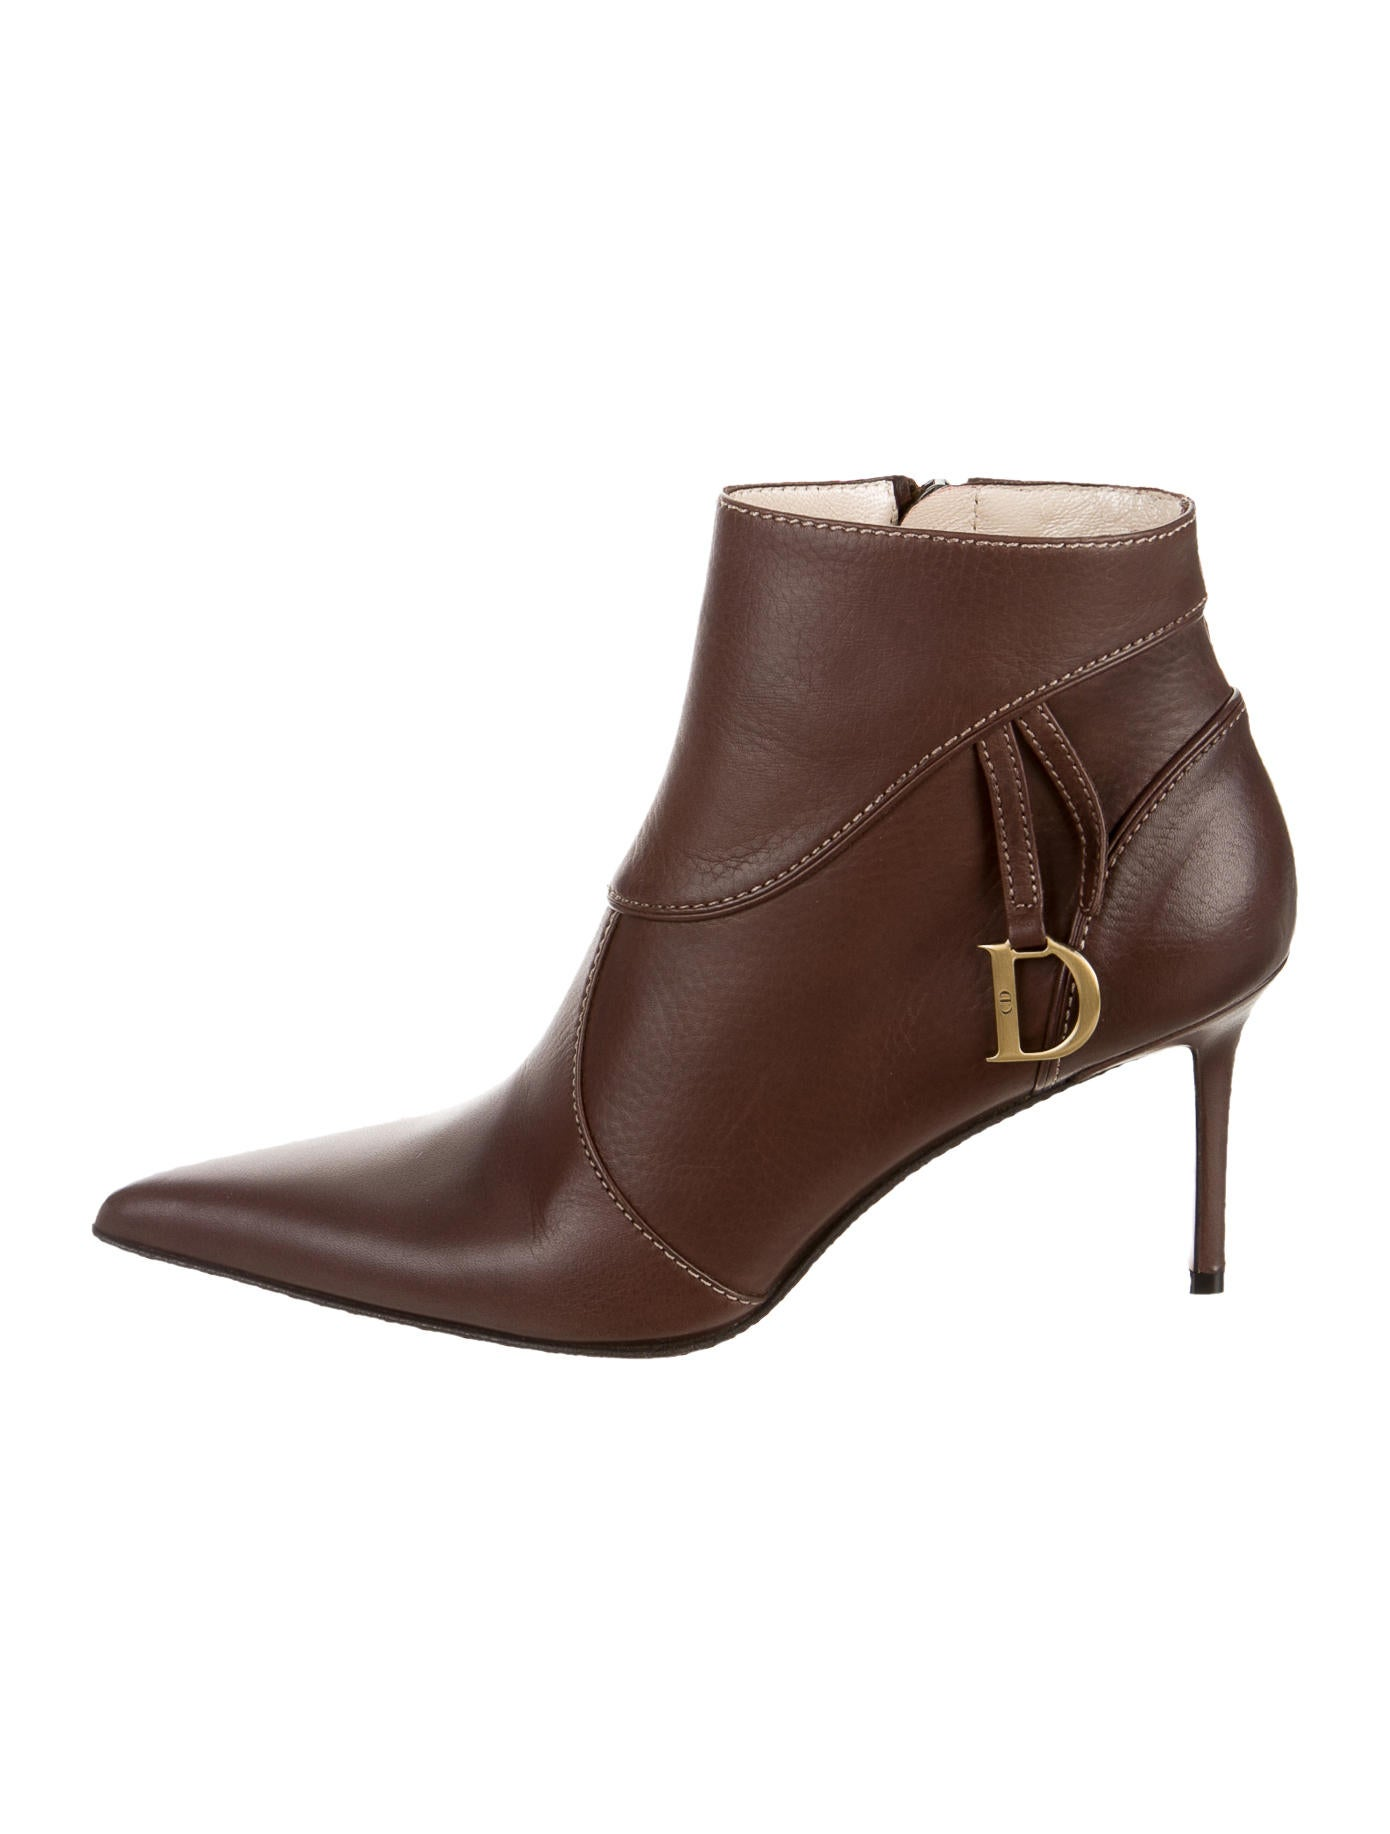 Online shopping for popular & hot Mens Pointed Toe Boots from Shoes, Basic Boots, Chelsea Boots, Work & Safety Boots and more related Mens Pointed Toe Boots like pointed toe men boots, men boots pointed toe, men pointed toe boots, toe pointed boots men. Discover over of the best Selection Mens Pointed Toe Boots on urgut.ga